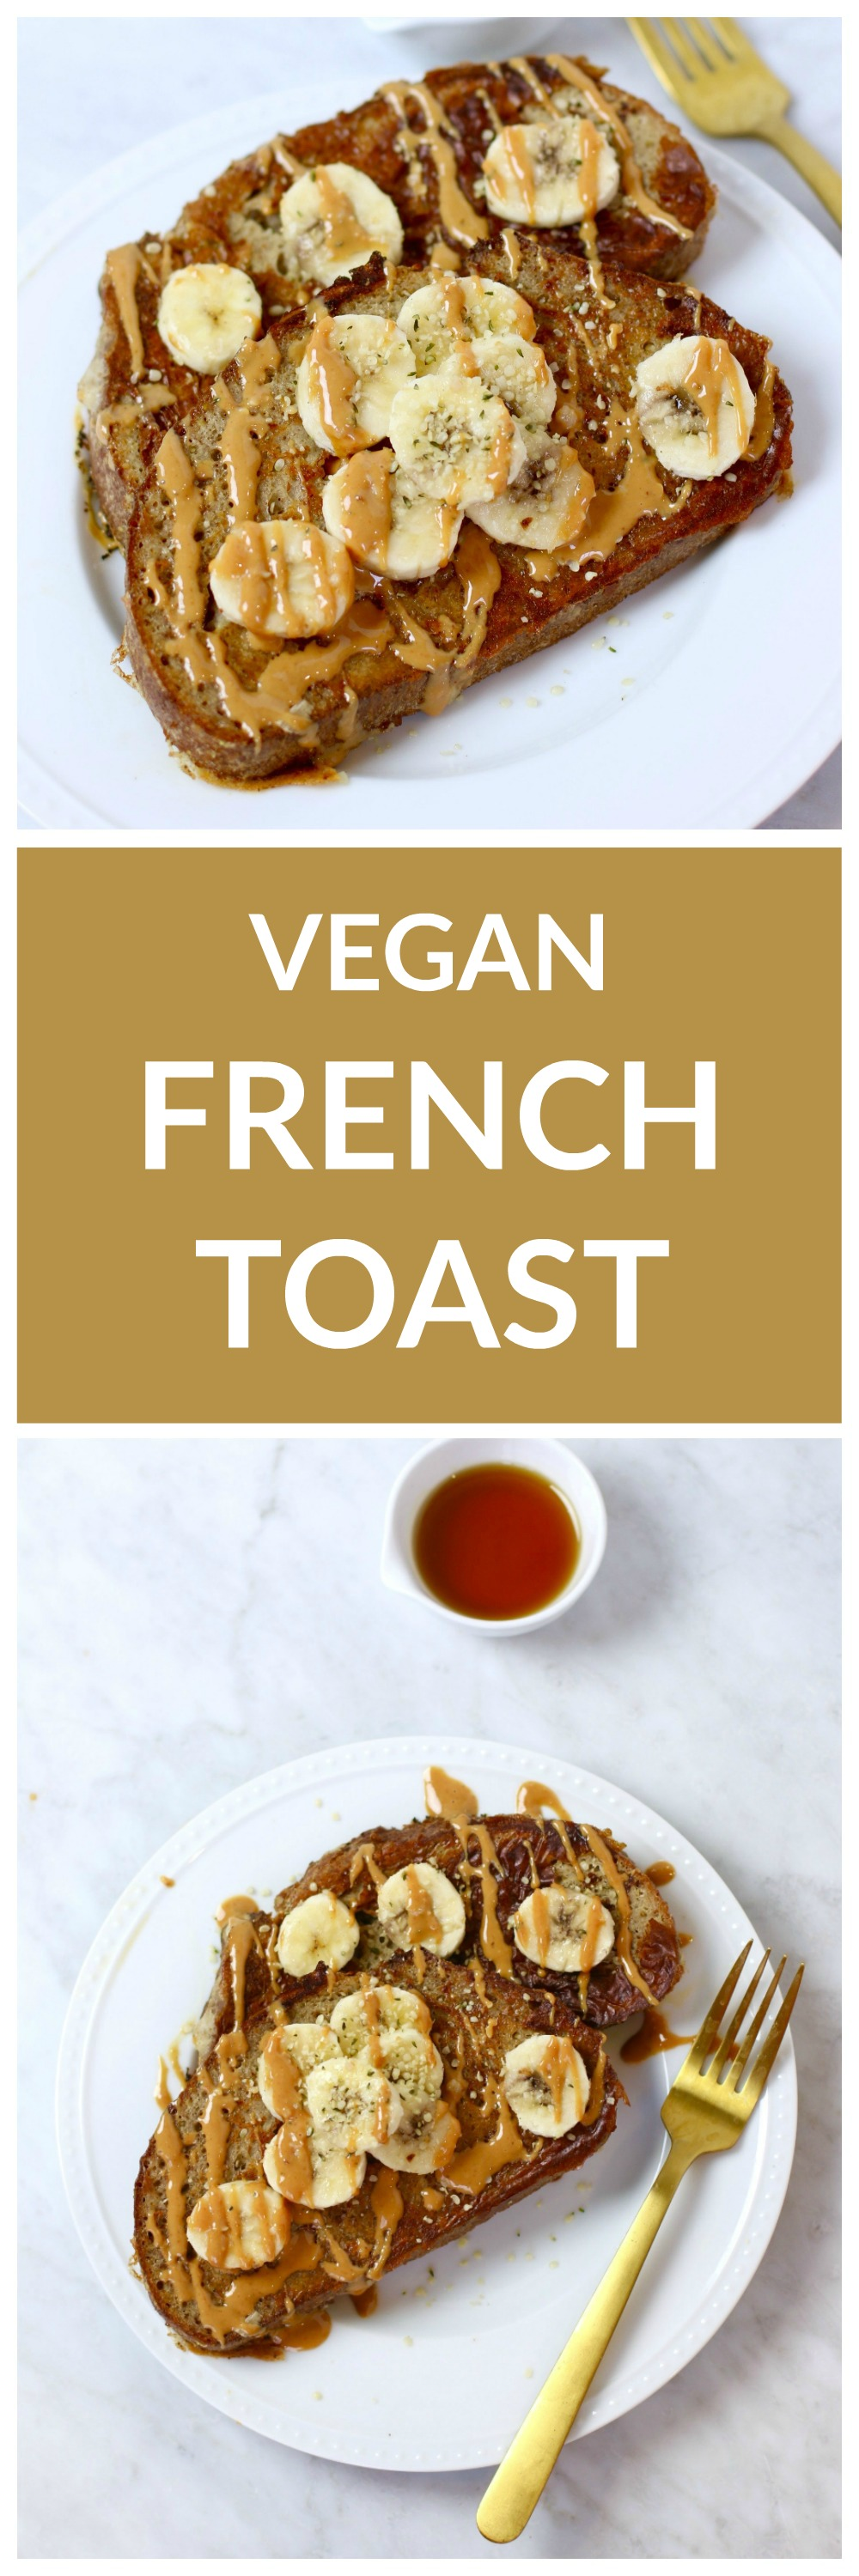 Vegan French Toast PIN